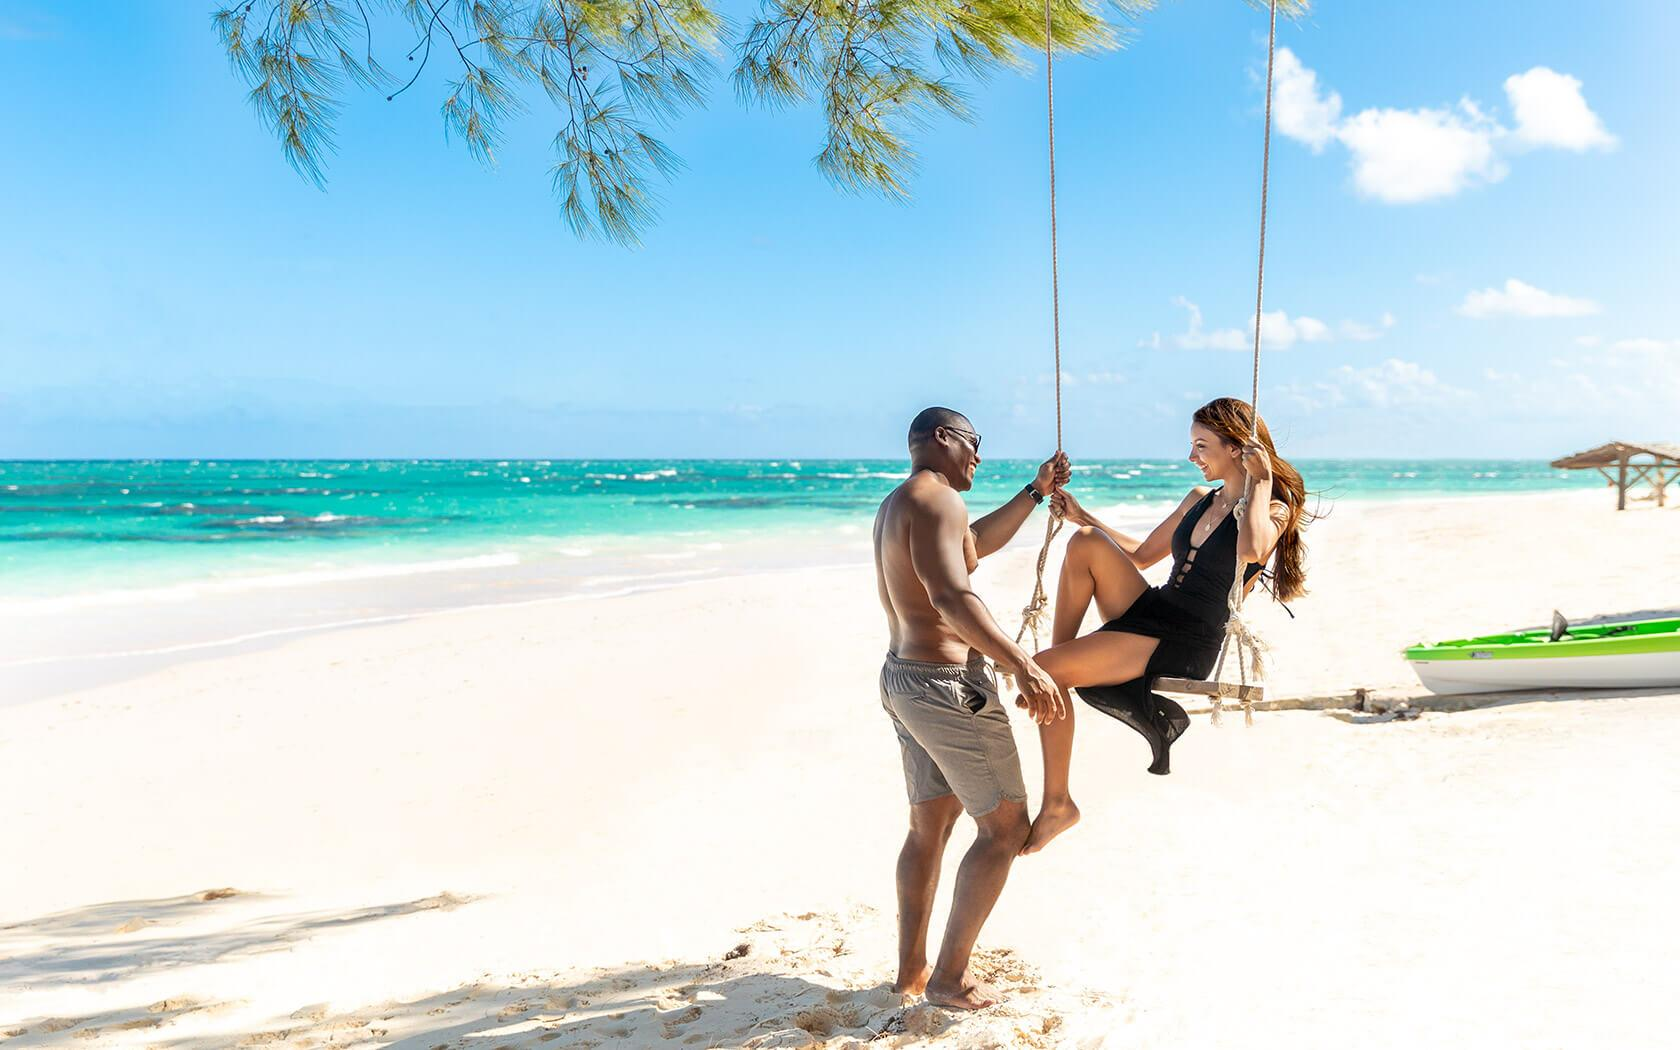 man and woman flirting on beach swing